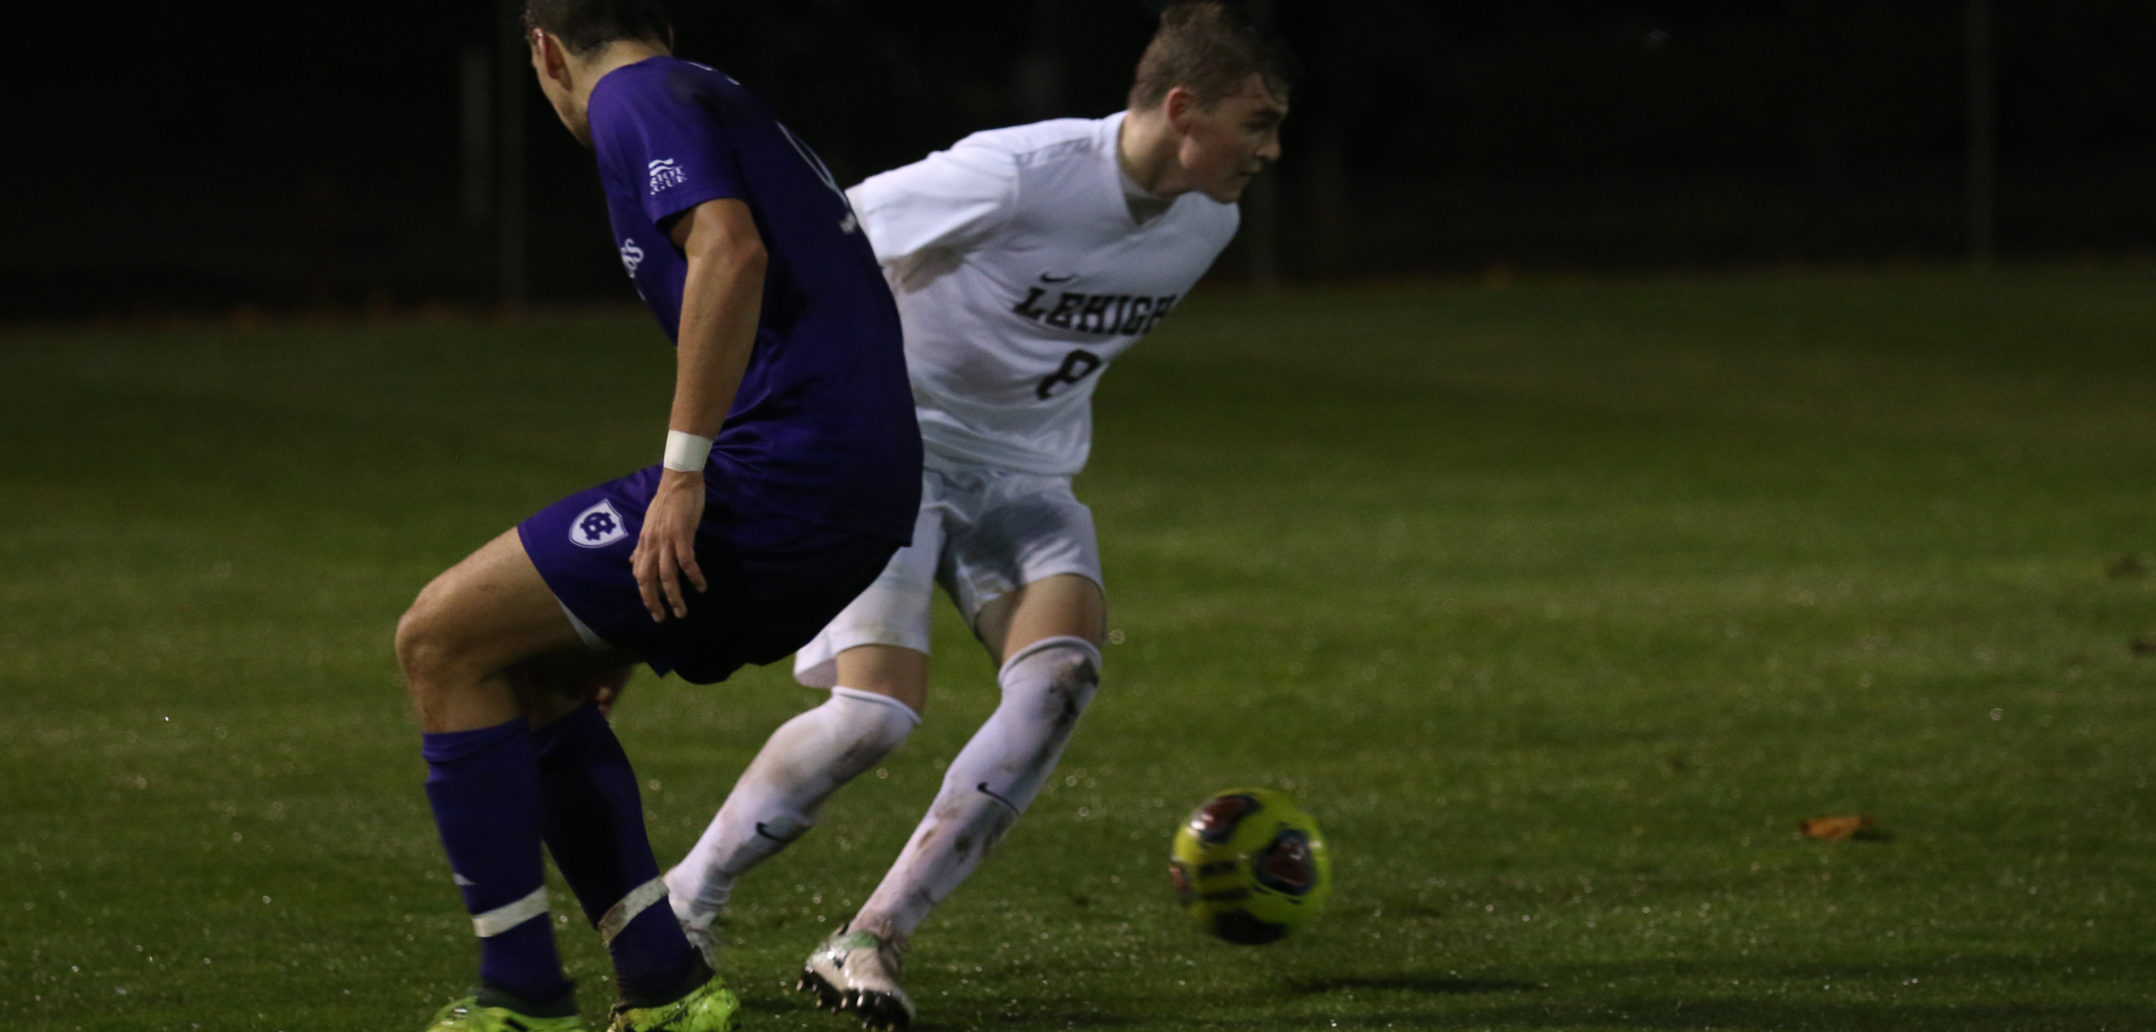 Freshman midfielder Stevo Benarsky wins the ball from Holy cross at the Patriot League quarterfinal game against Holy Cross at Ulrich Sports Complex on Tuesday night.  Bednarsky has been a key player for the Mountain Hawks all season.  (Alexis McGowan/ B&W Staff)